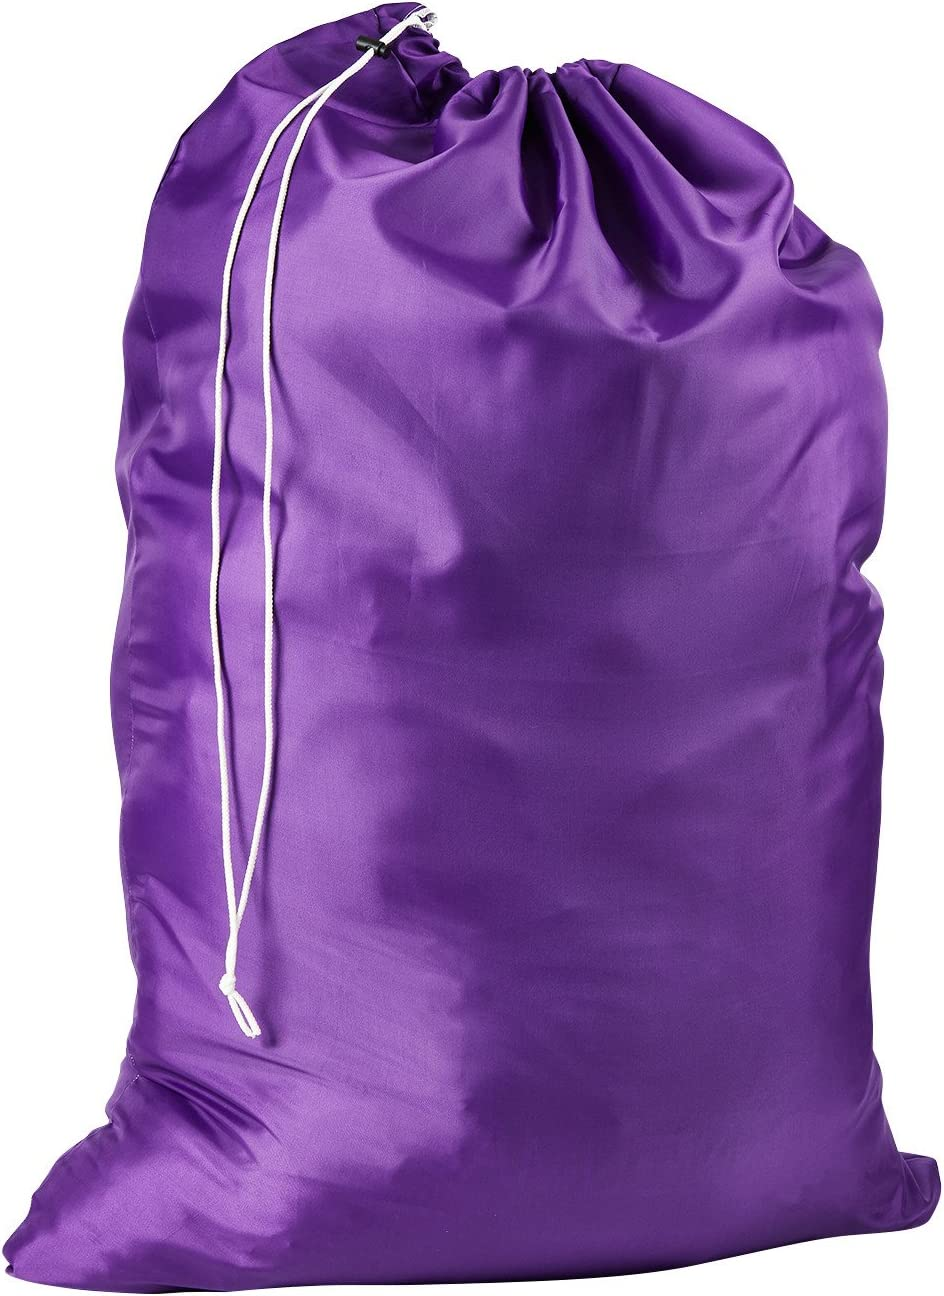 Nylon Laundry Bag - Locking Drawstring Closure and Machine Washable. These Large Bags Will Fit a Laundry Basket or Hamper and Strong Enough to Carry up to Three Loads of Clothes. (Purple)